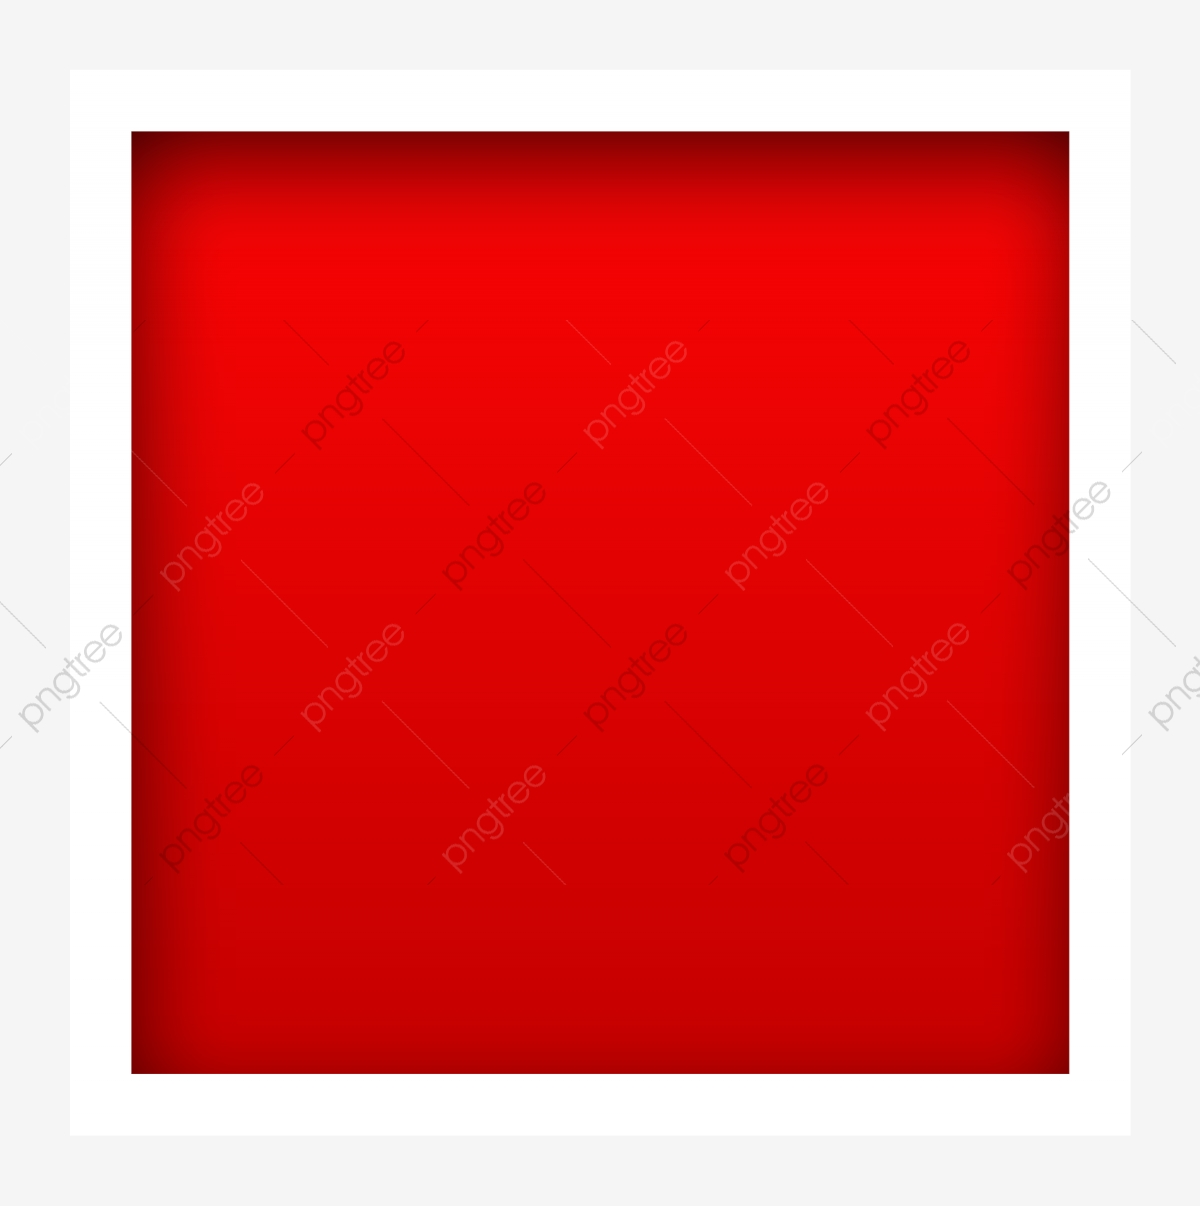 Red Square Frame Image, Png, Texture, Color PNG Transparent ... graphic